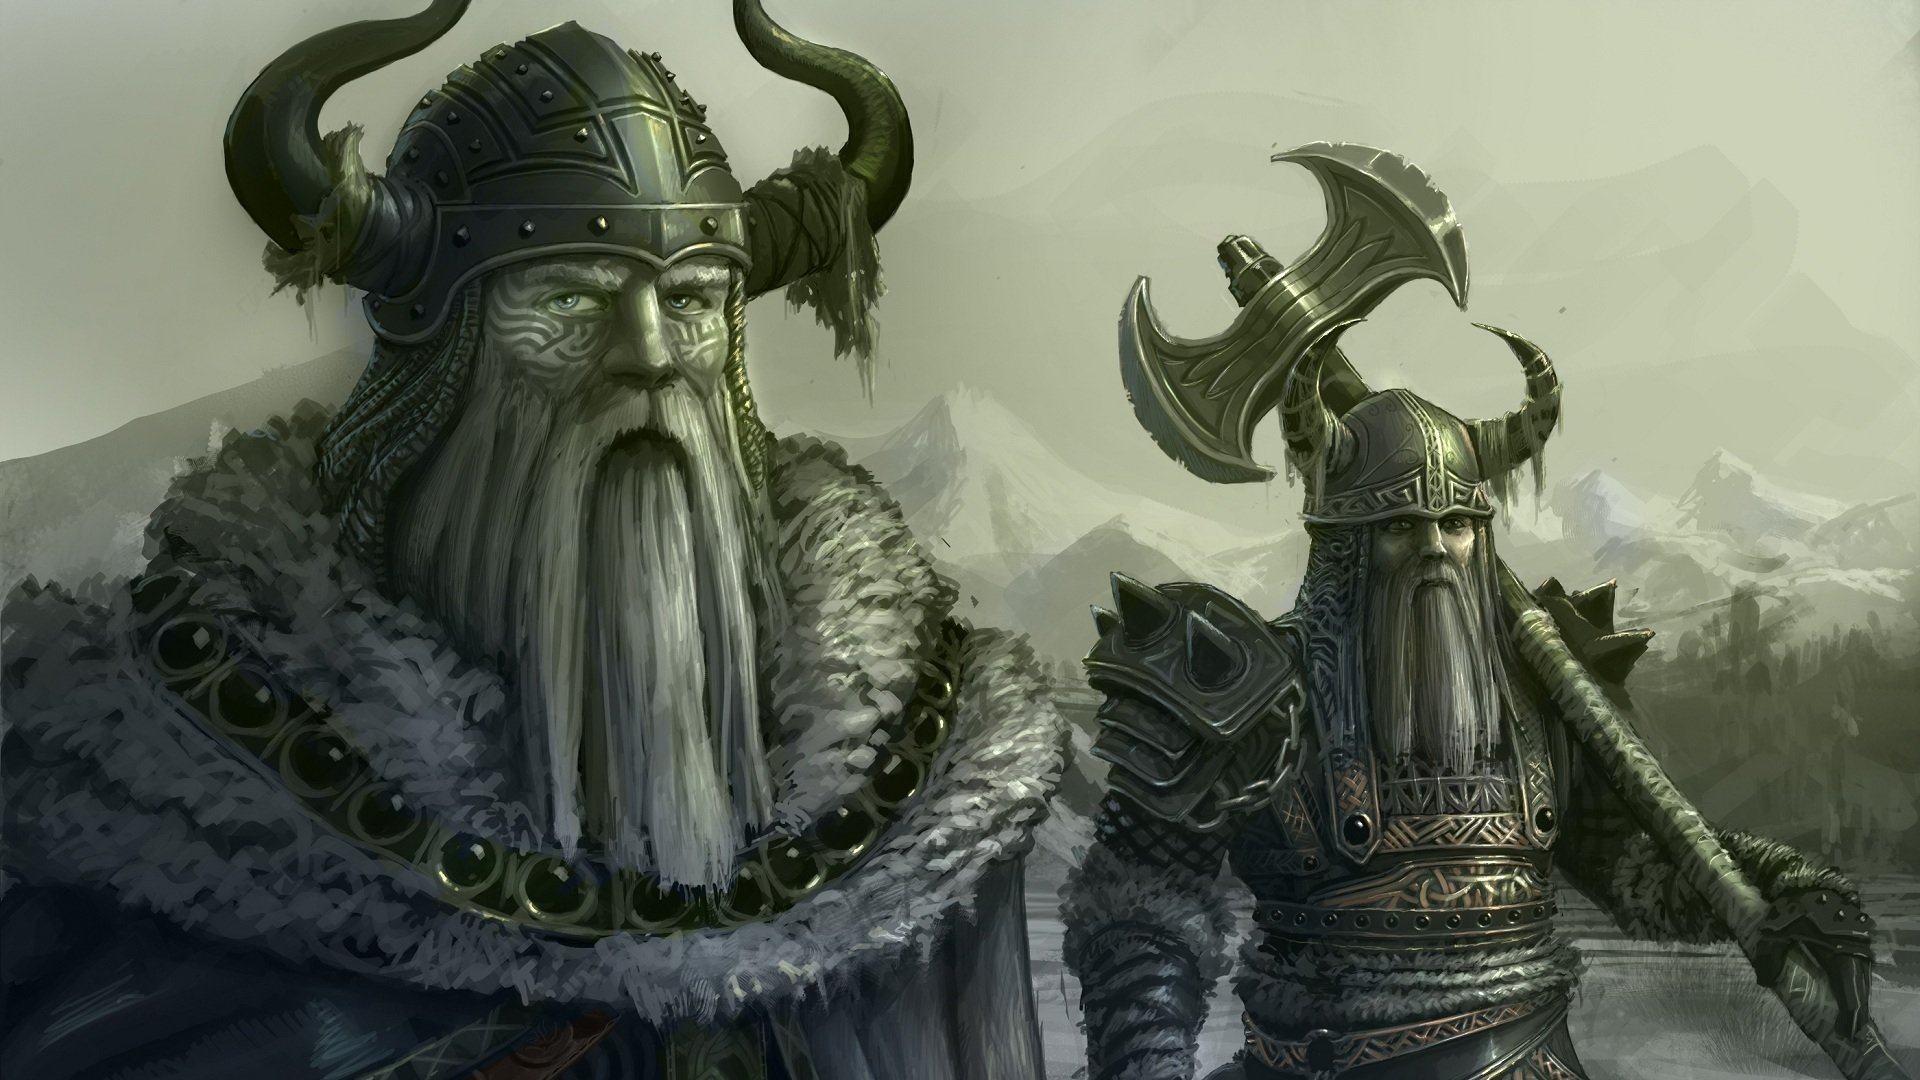 Viking wallpapers HD for desktop backgrounds 1920x1080